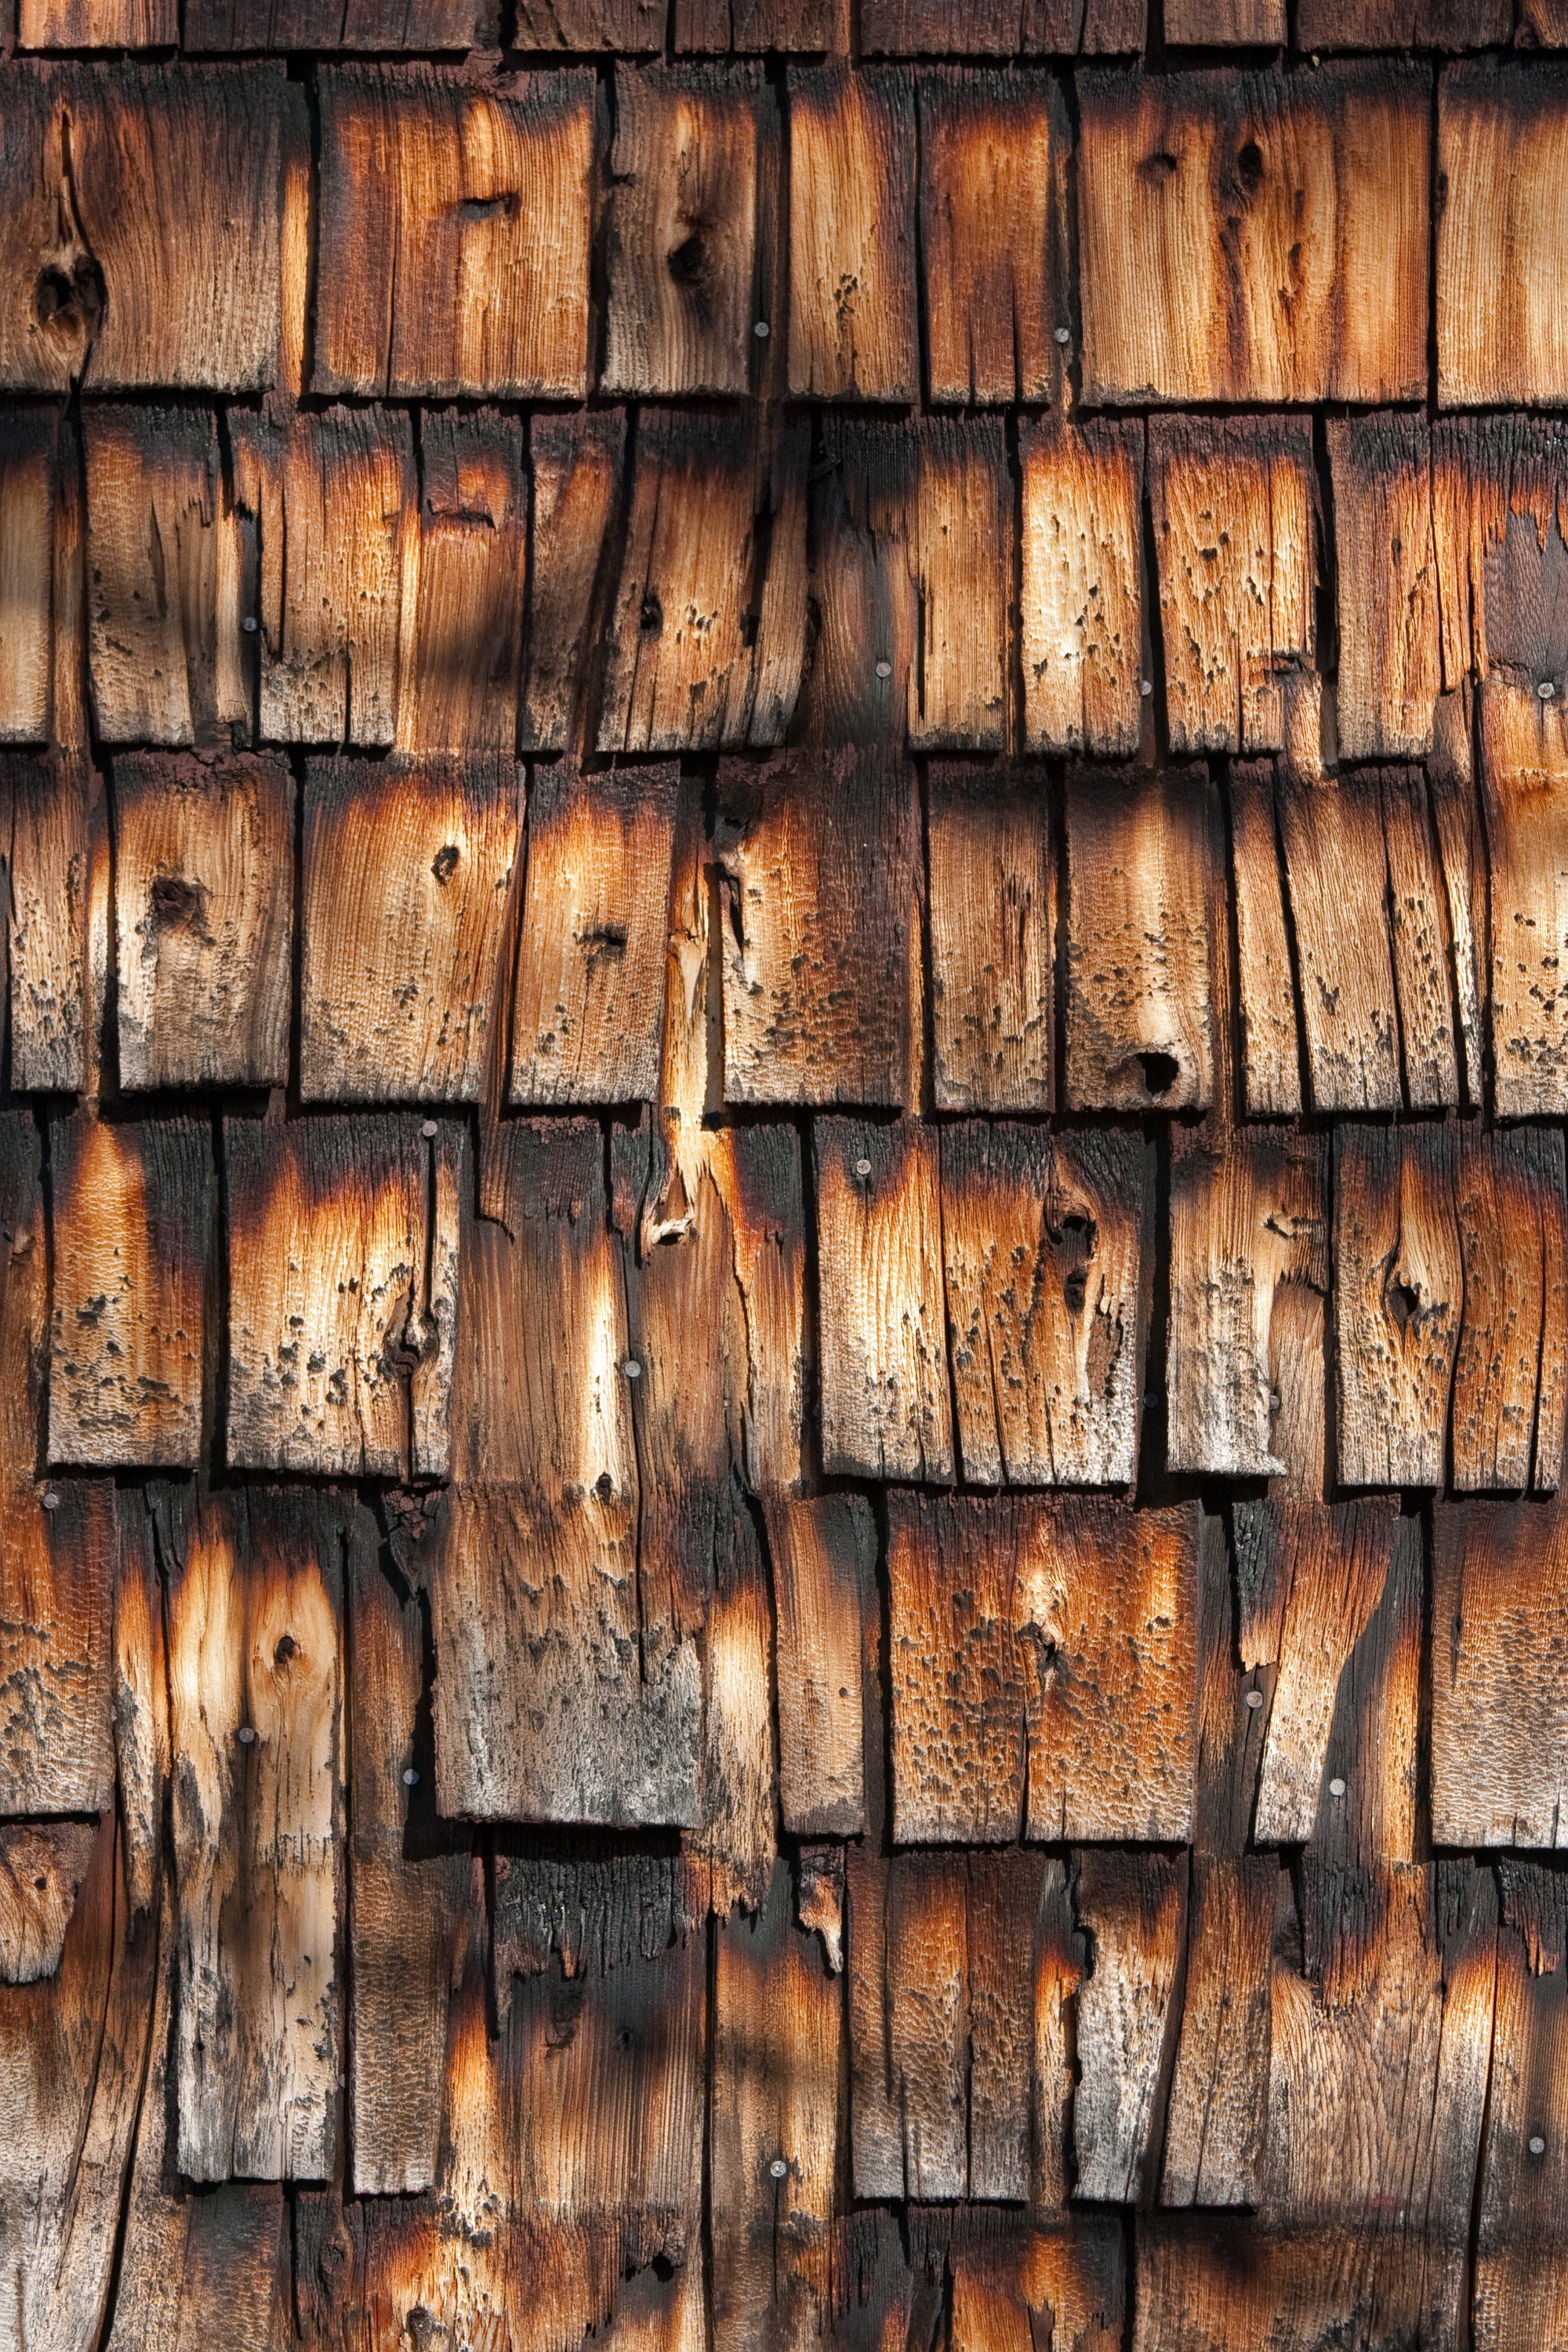 burned siding